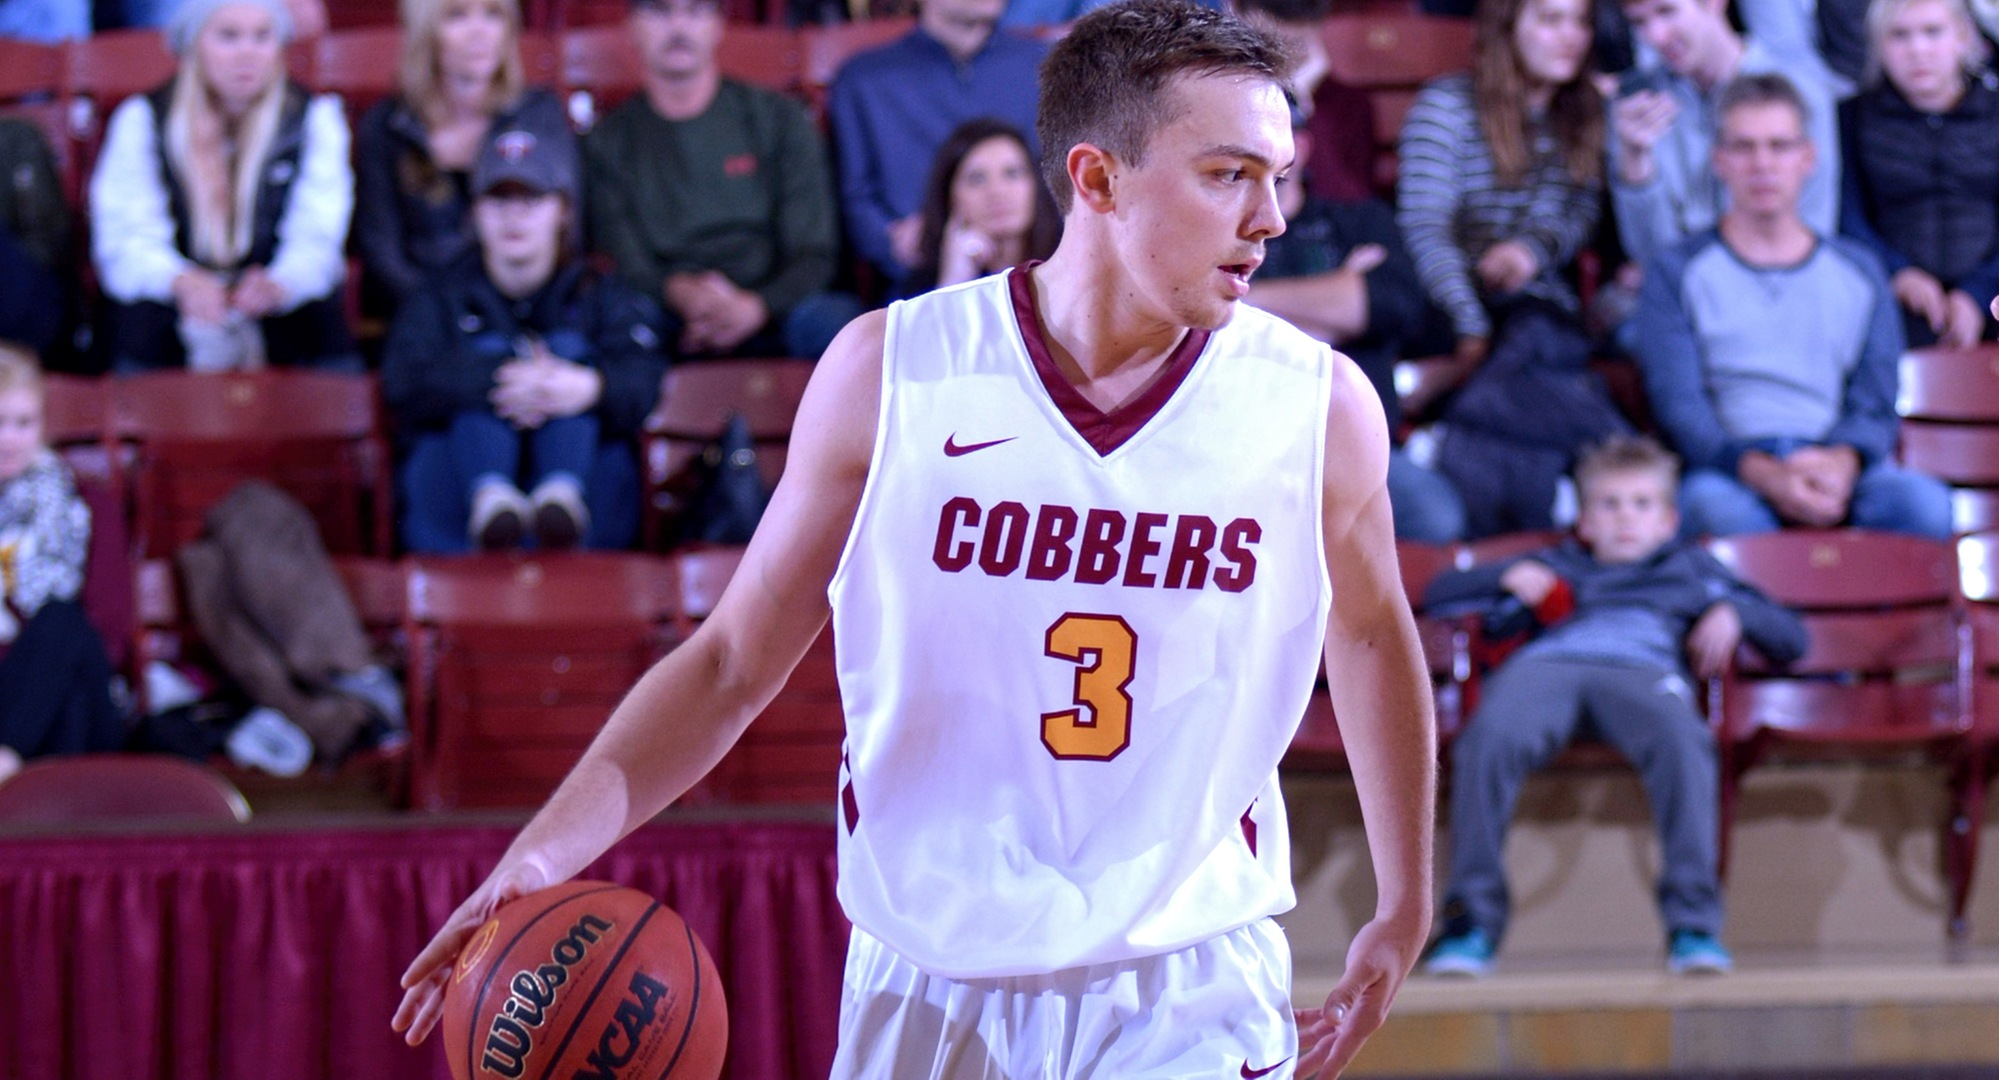 Senior Zach Kinny hit a 3-pointer with .02 seconds left to go to give the Cobbers a 74-73 win over St. John's. Kinny also had 10 rebounds and six assists.